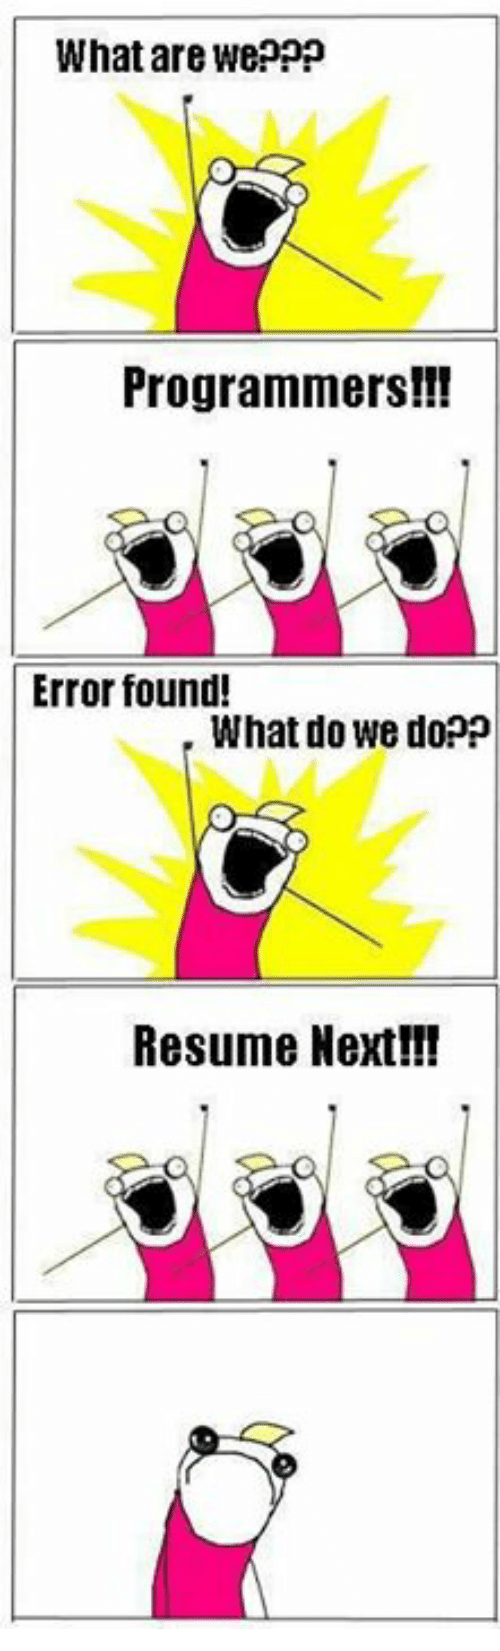 What Are Weppp Programmers Error Found What Do We Doop Resume